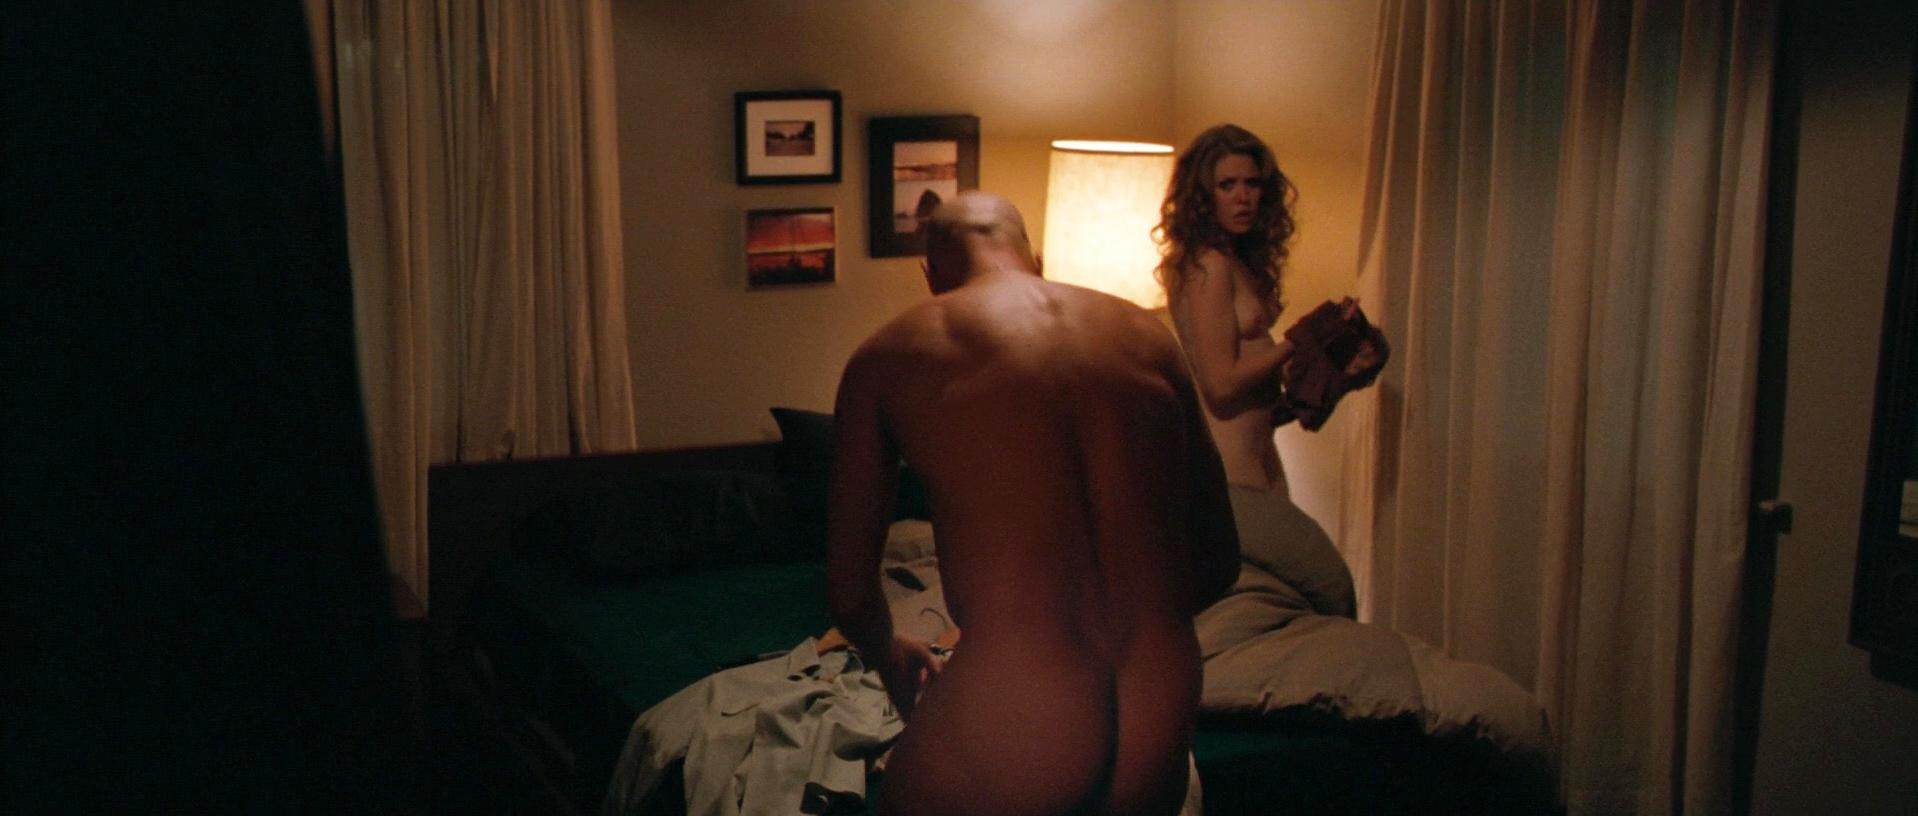 Jena malone and lisa joyce nude the messenger